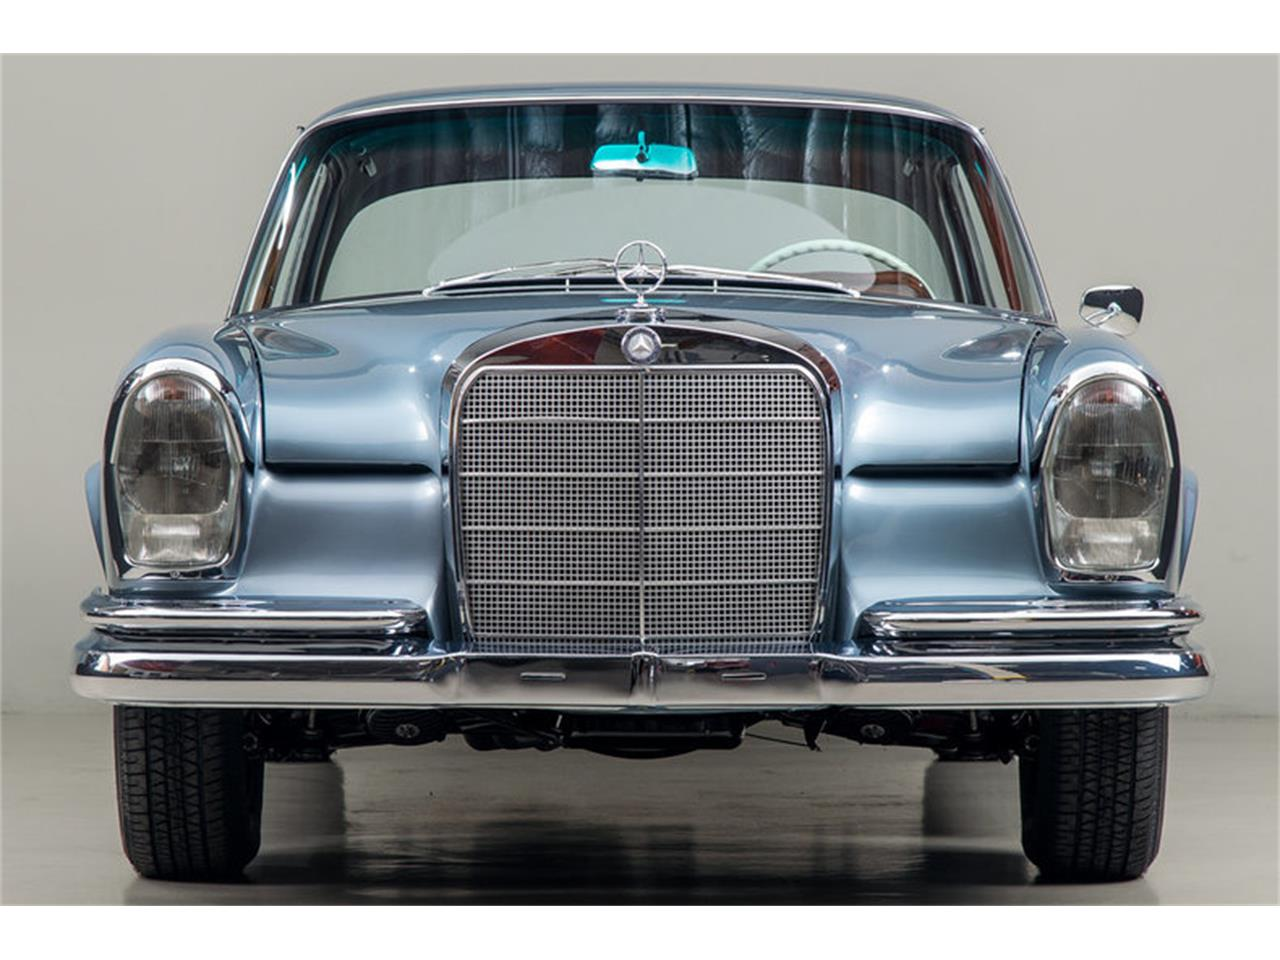 Large Picture of Classic 1966 Mercedes-Benz 250SE Auction Vehicle Offered by Canepa - DSVZ